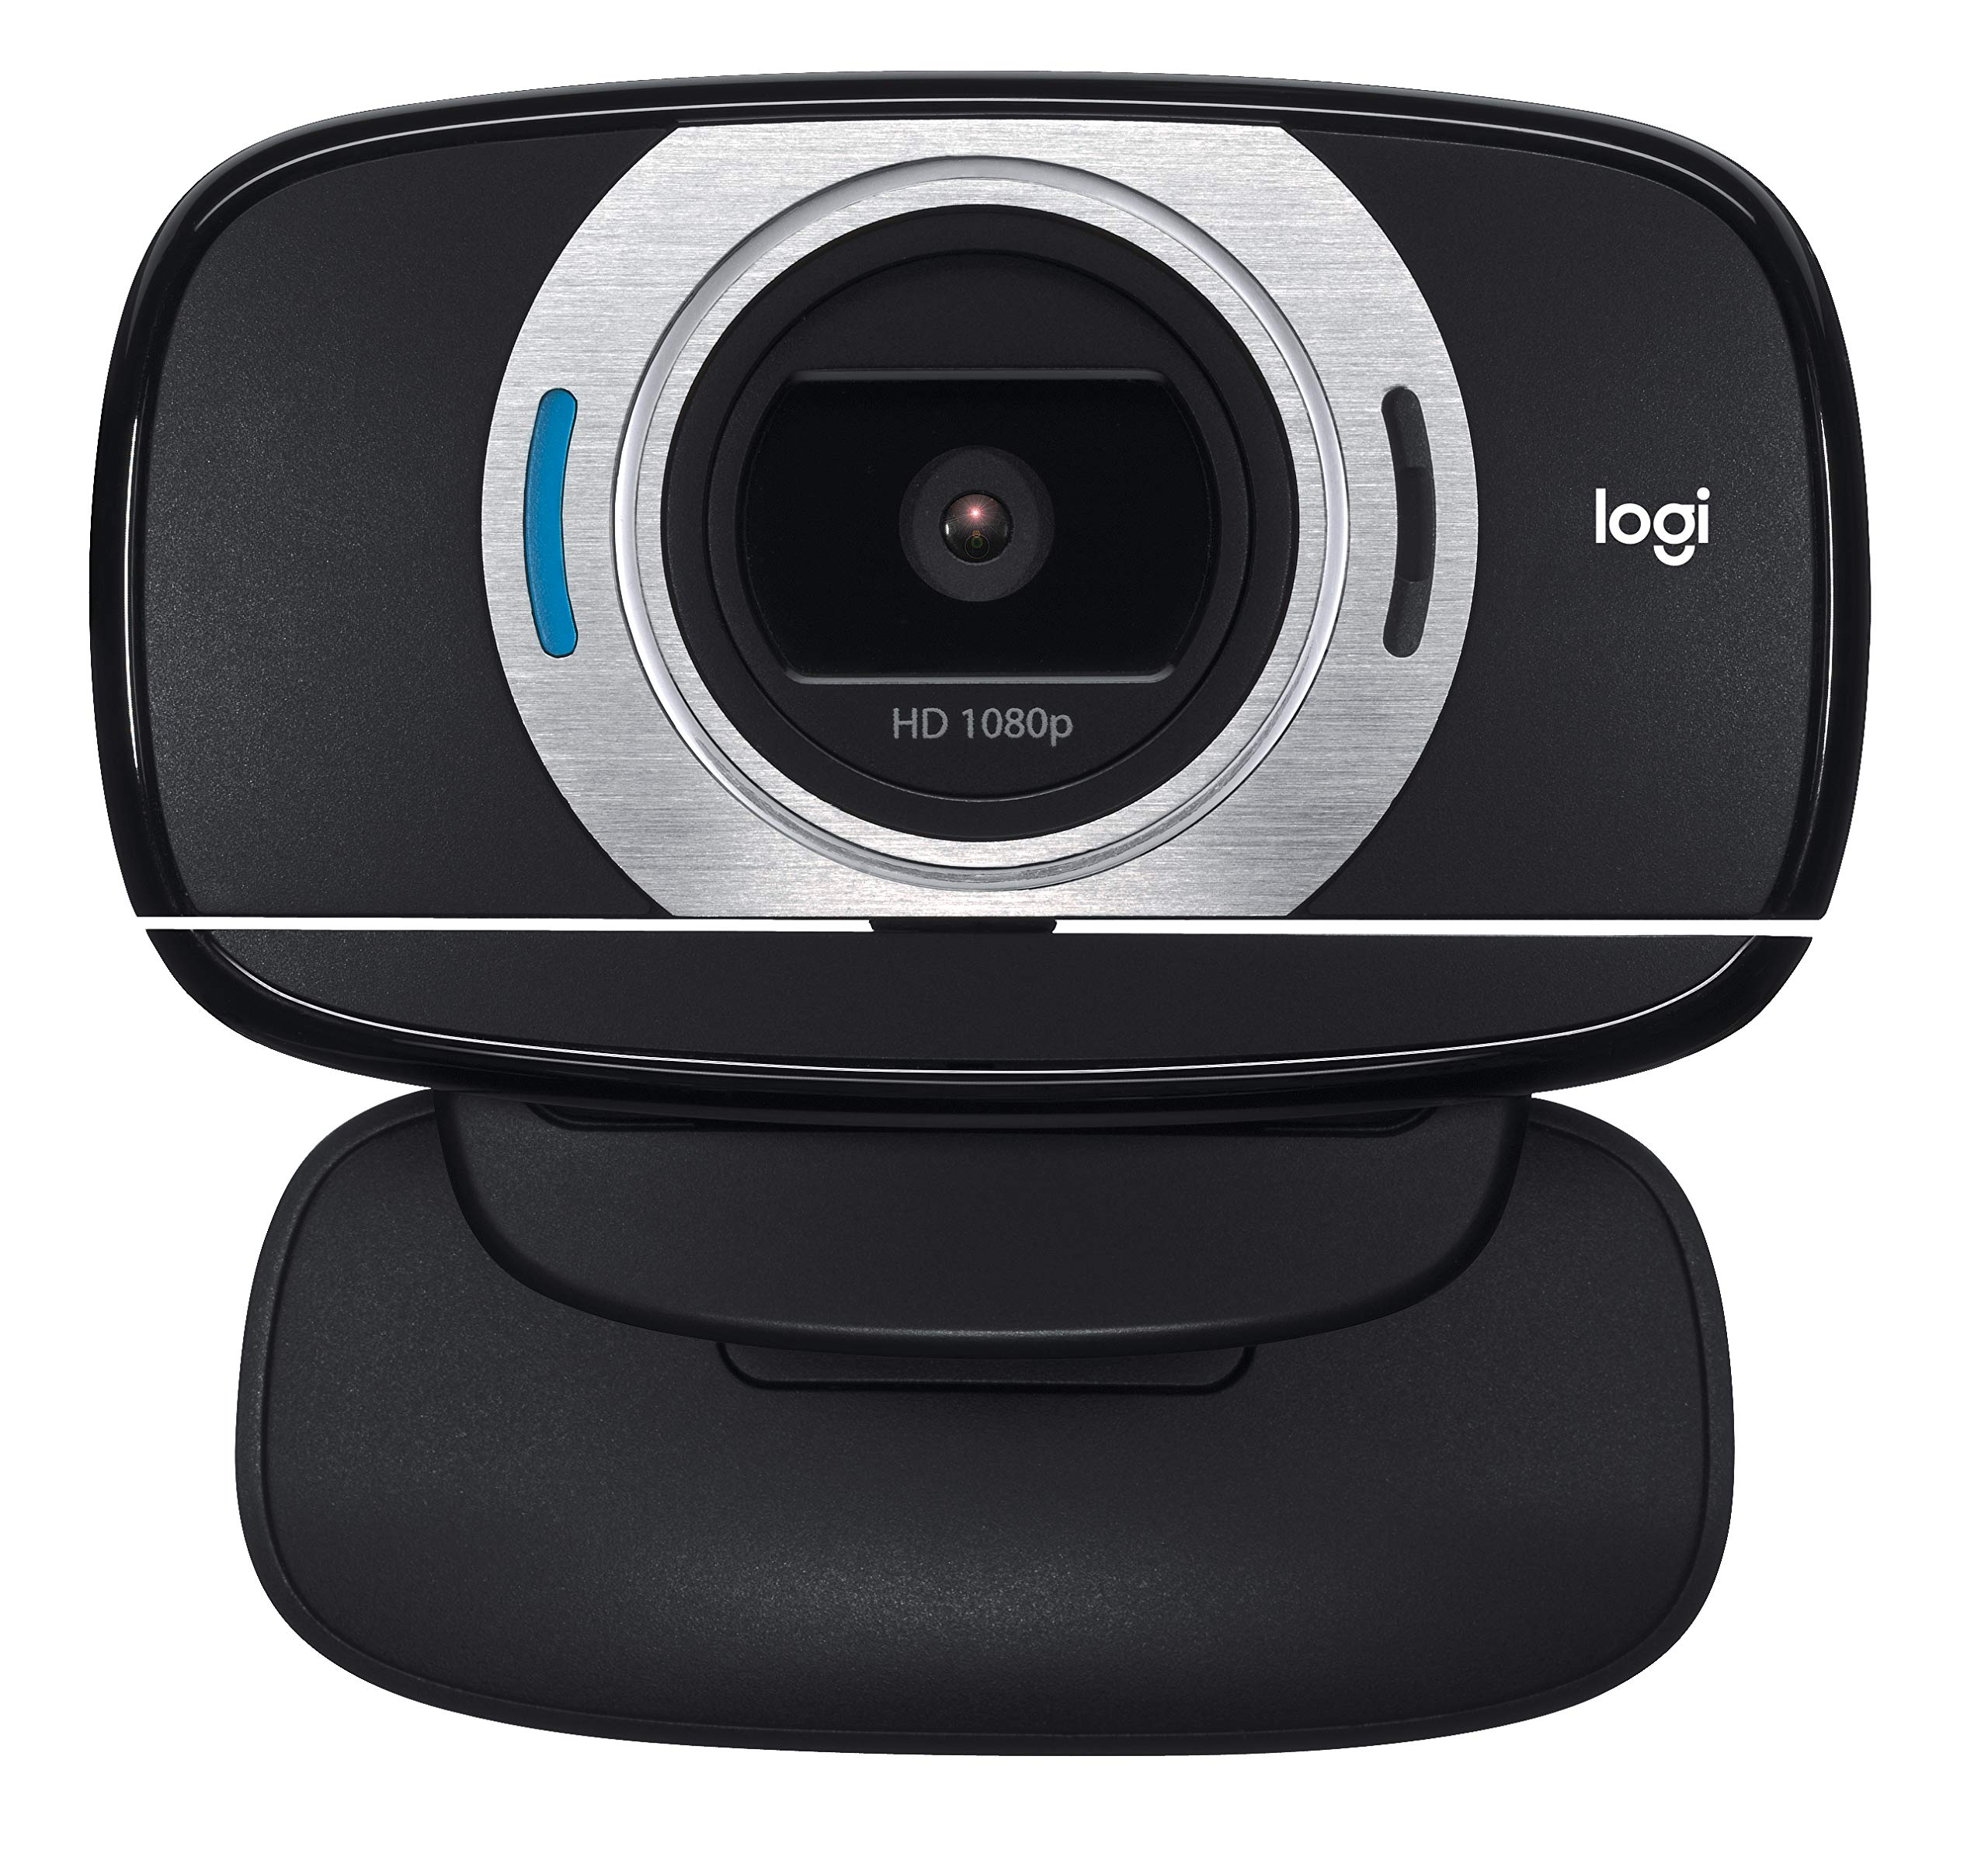 로지텍 HD 웹캠 C615 화상 카메라 Logitech HD Laptop Webcam C615 with Fold-and-Go Design, 360-Degree Swivel, 1080p Camera,Standard Packaging